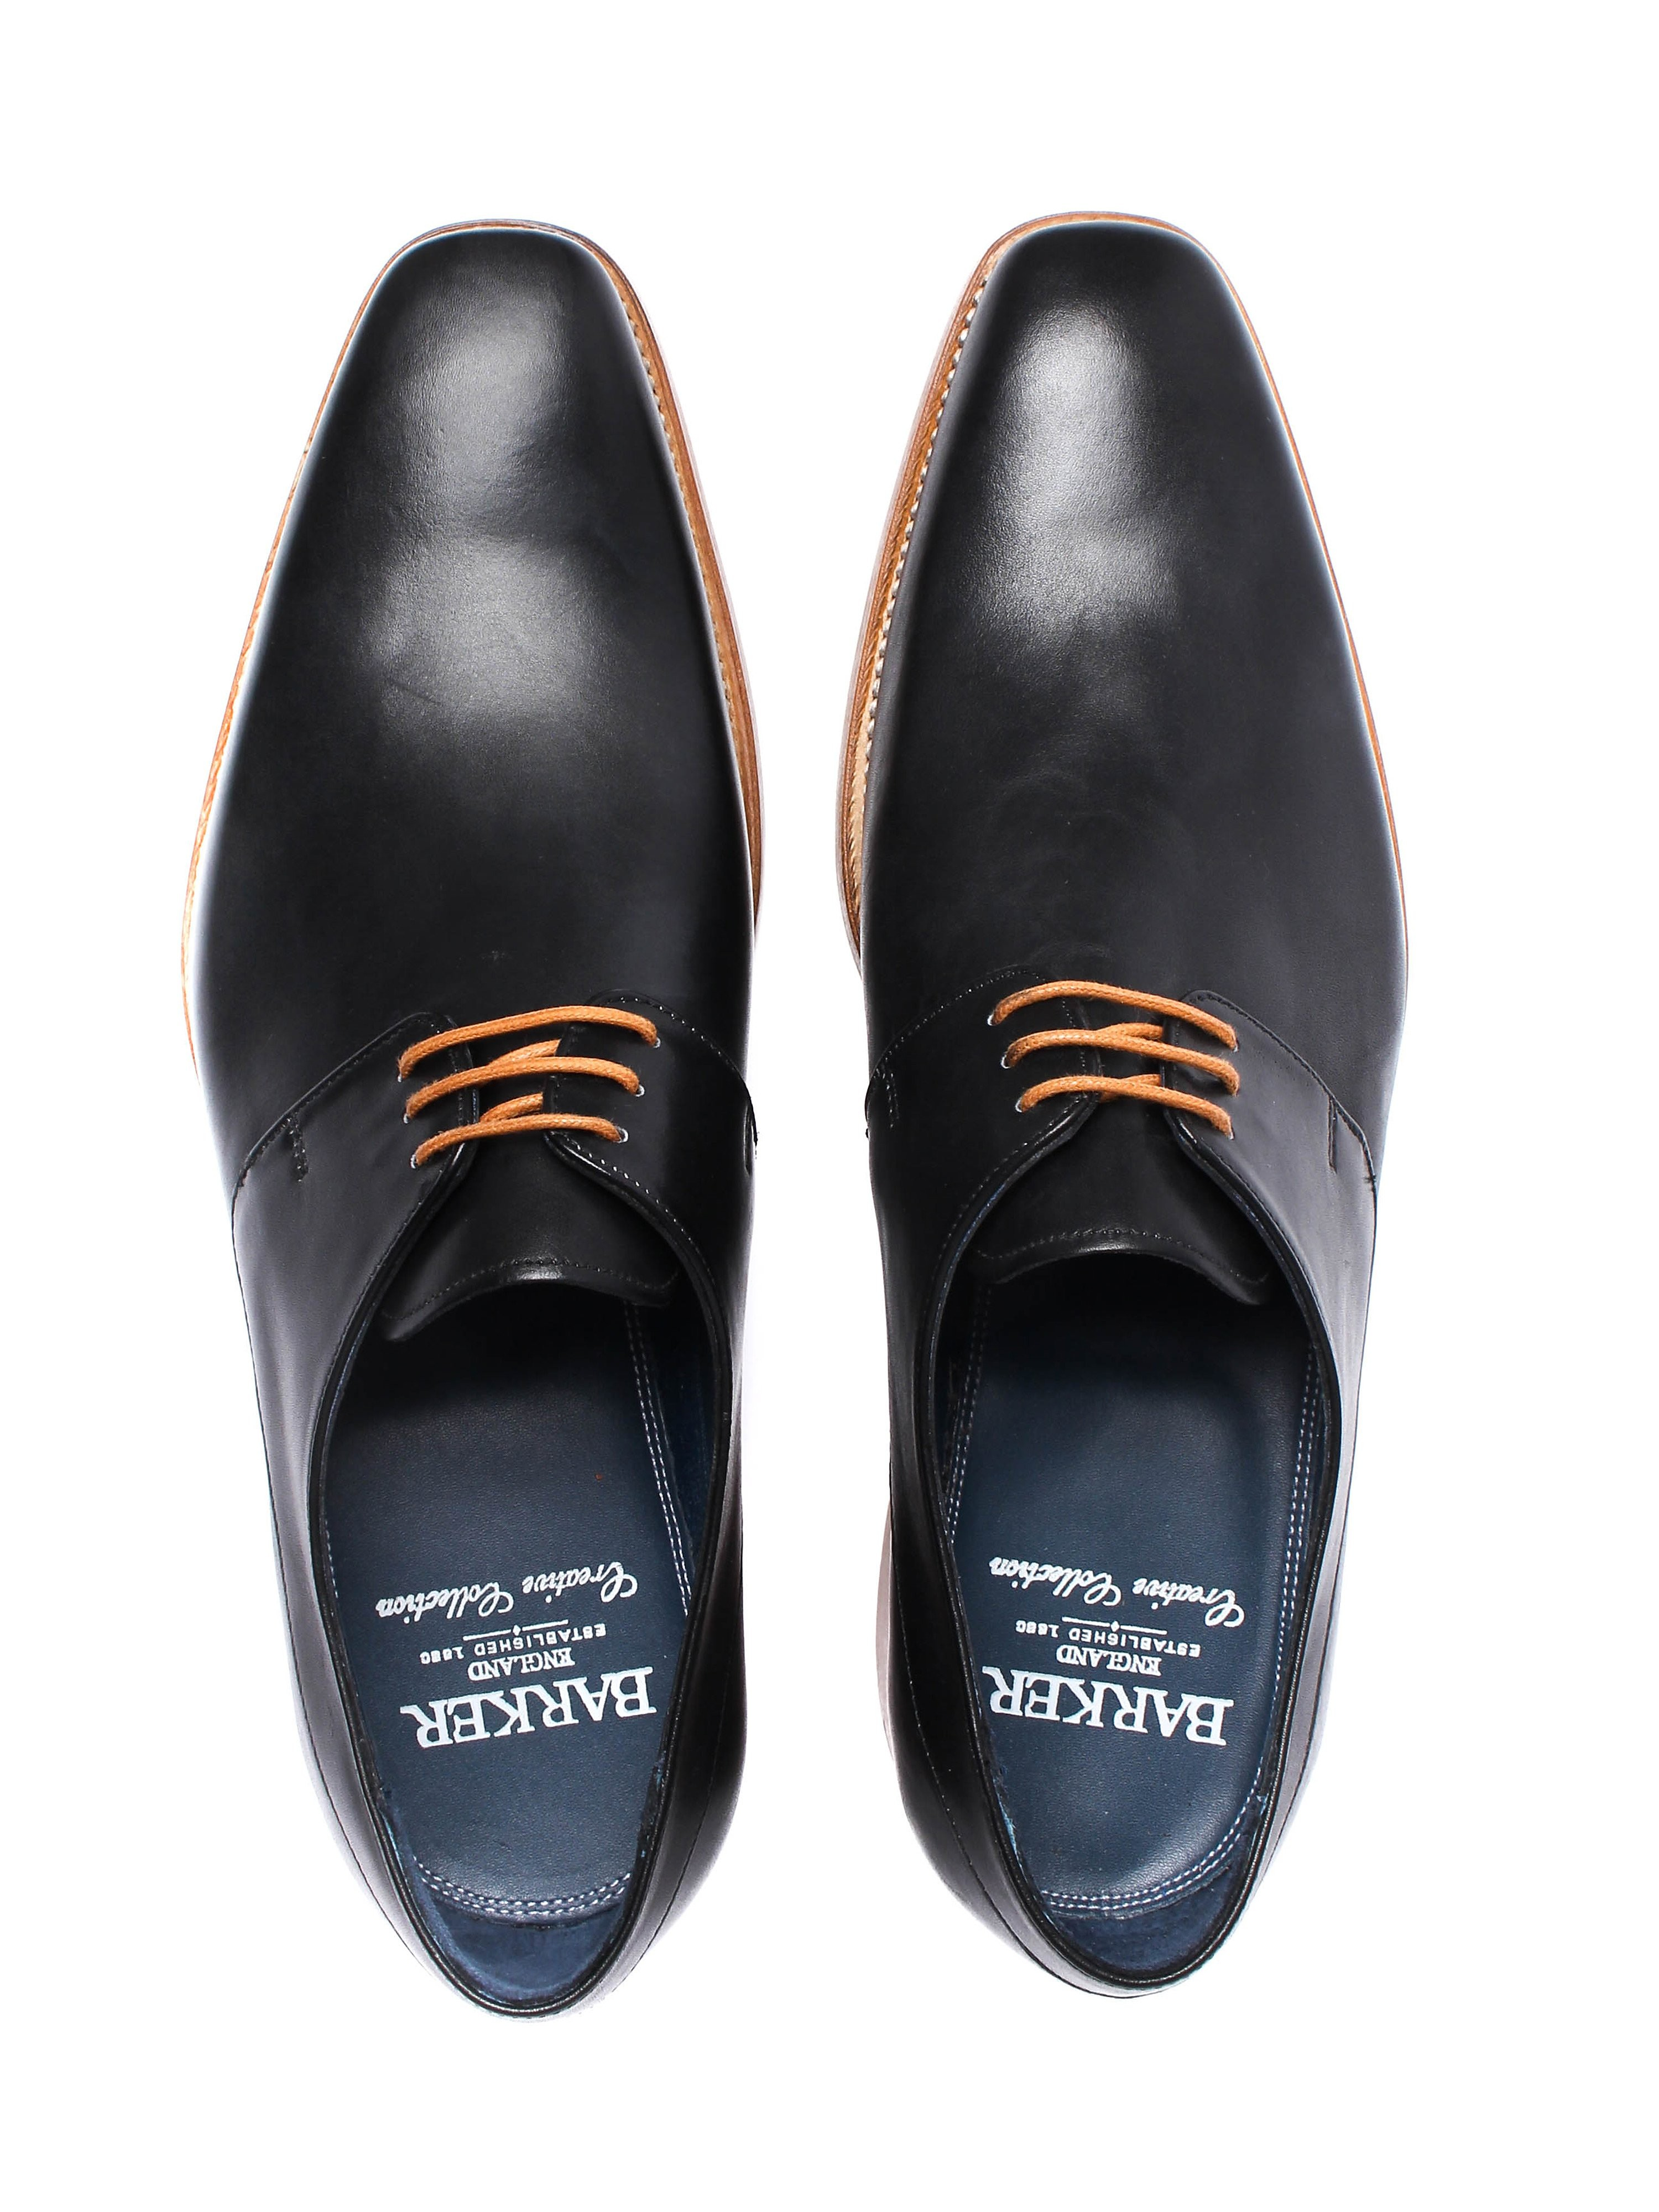 Barker Men's Kurt Leather Derby Shoes - Black